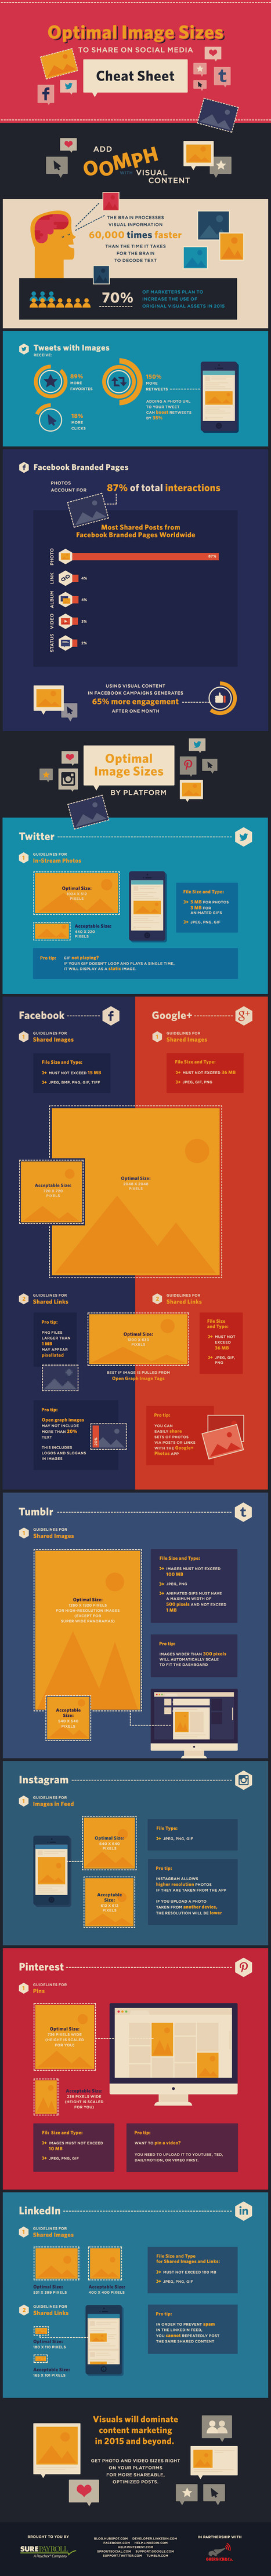 Optimal Image Sizes to Share on Social Media Cheat Sheet #Infographic | Webdesign, Graphics, Images, Audio-Video, | Scoop.it